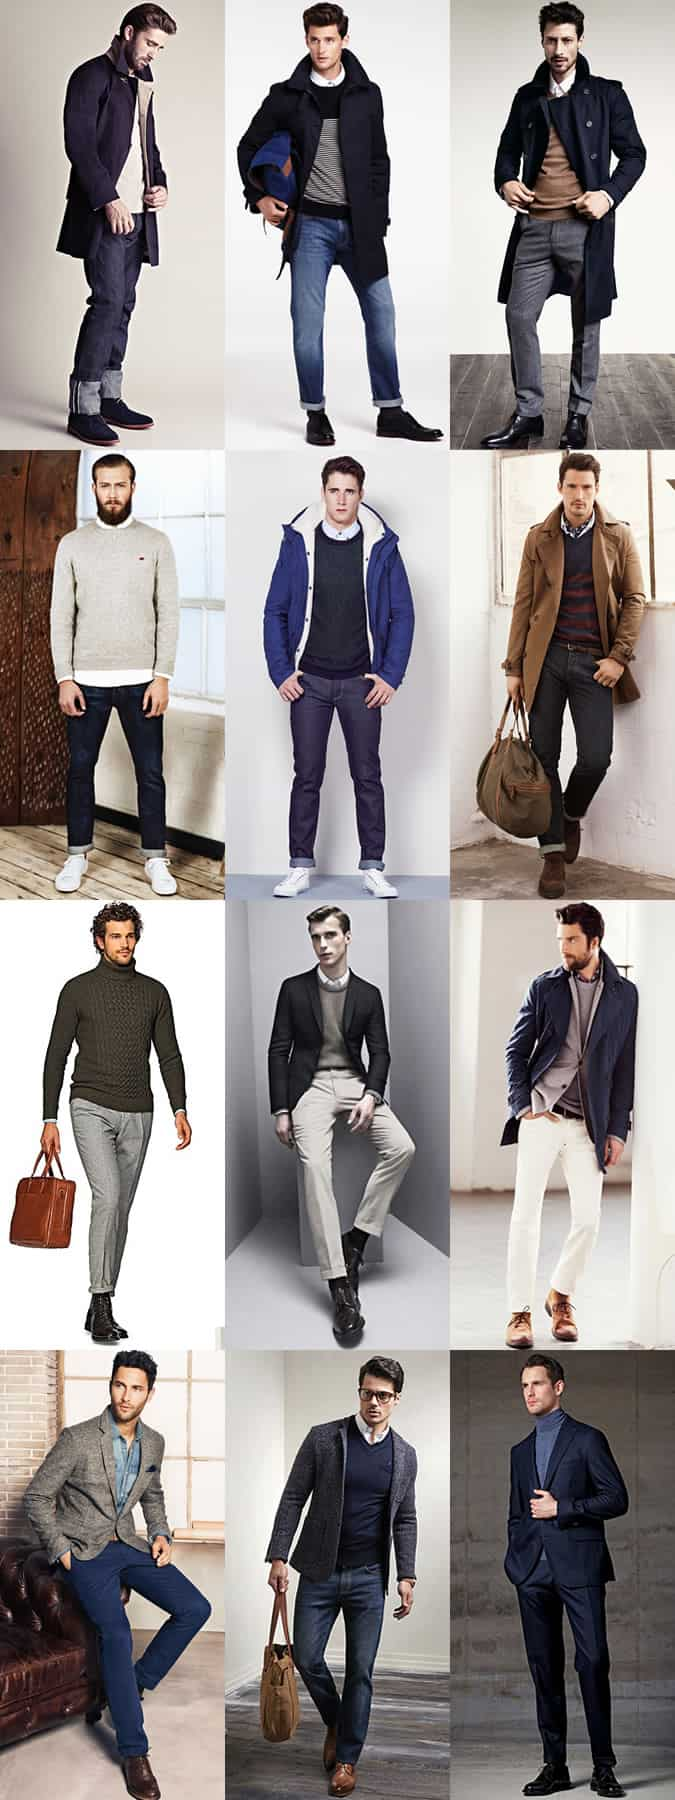 A Winter City Break In London, UK - Men's Smart-Casual Cold-Weather Outfit Inspiration Lookbook